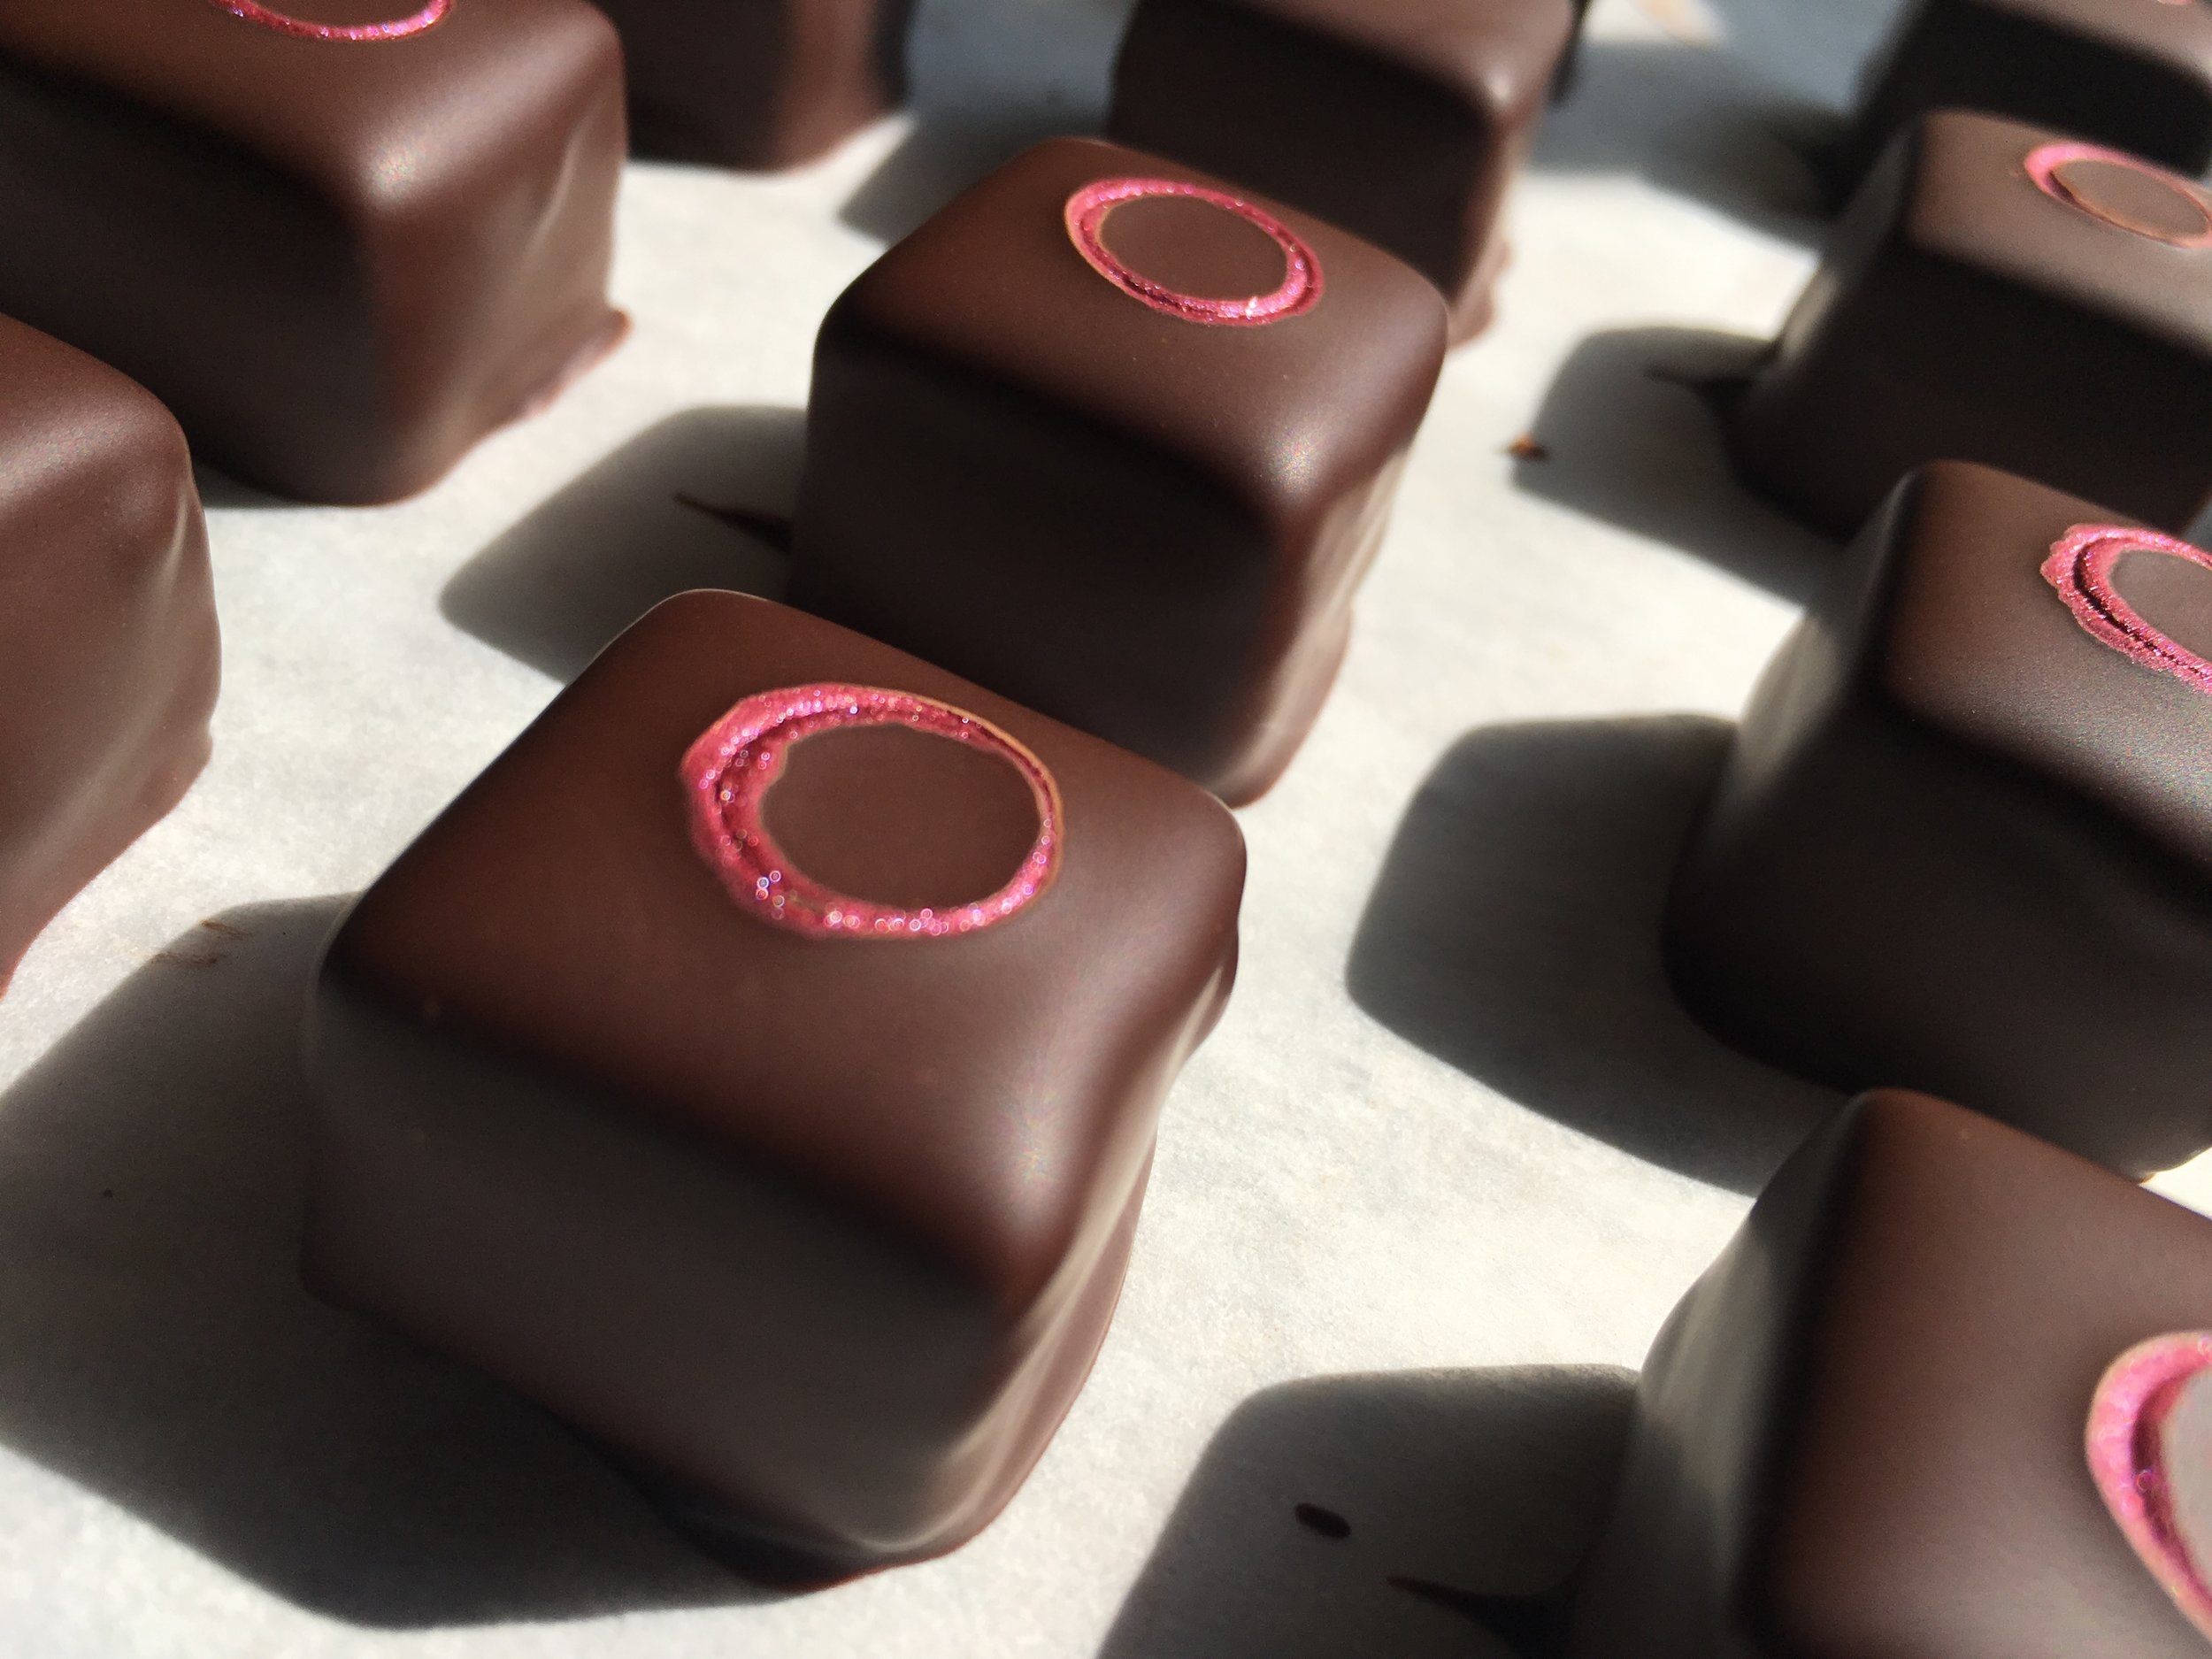 We combine a layer of sour cherry pâte de fruit, a layer of dark chocolate ganache and a layer of white chocolate ganache flavored with Kirsch to recreate the classic Black Forest taste.